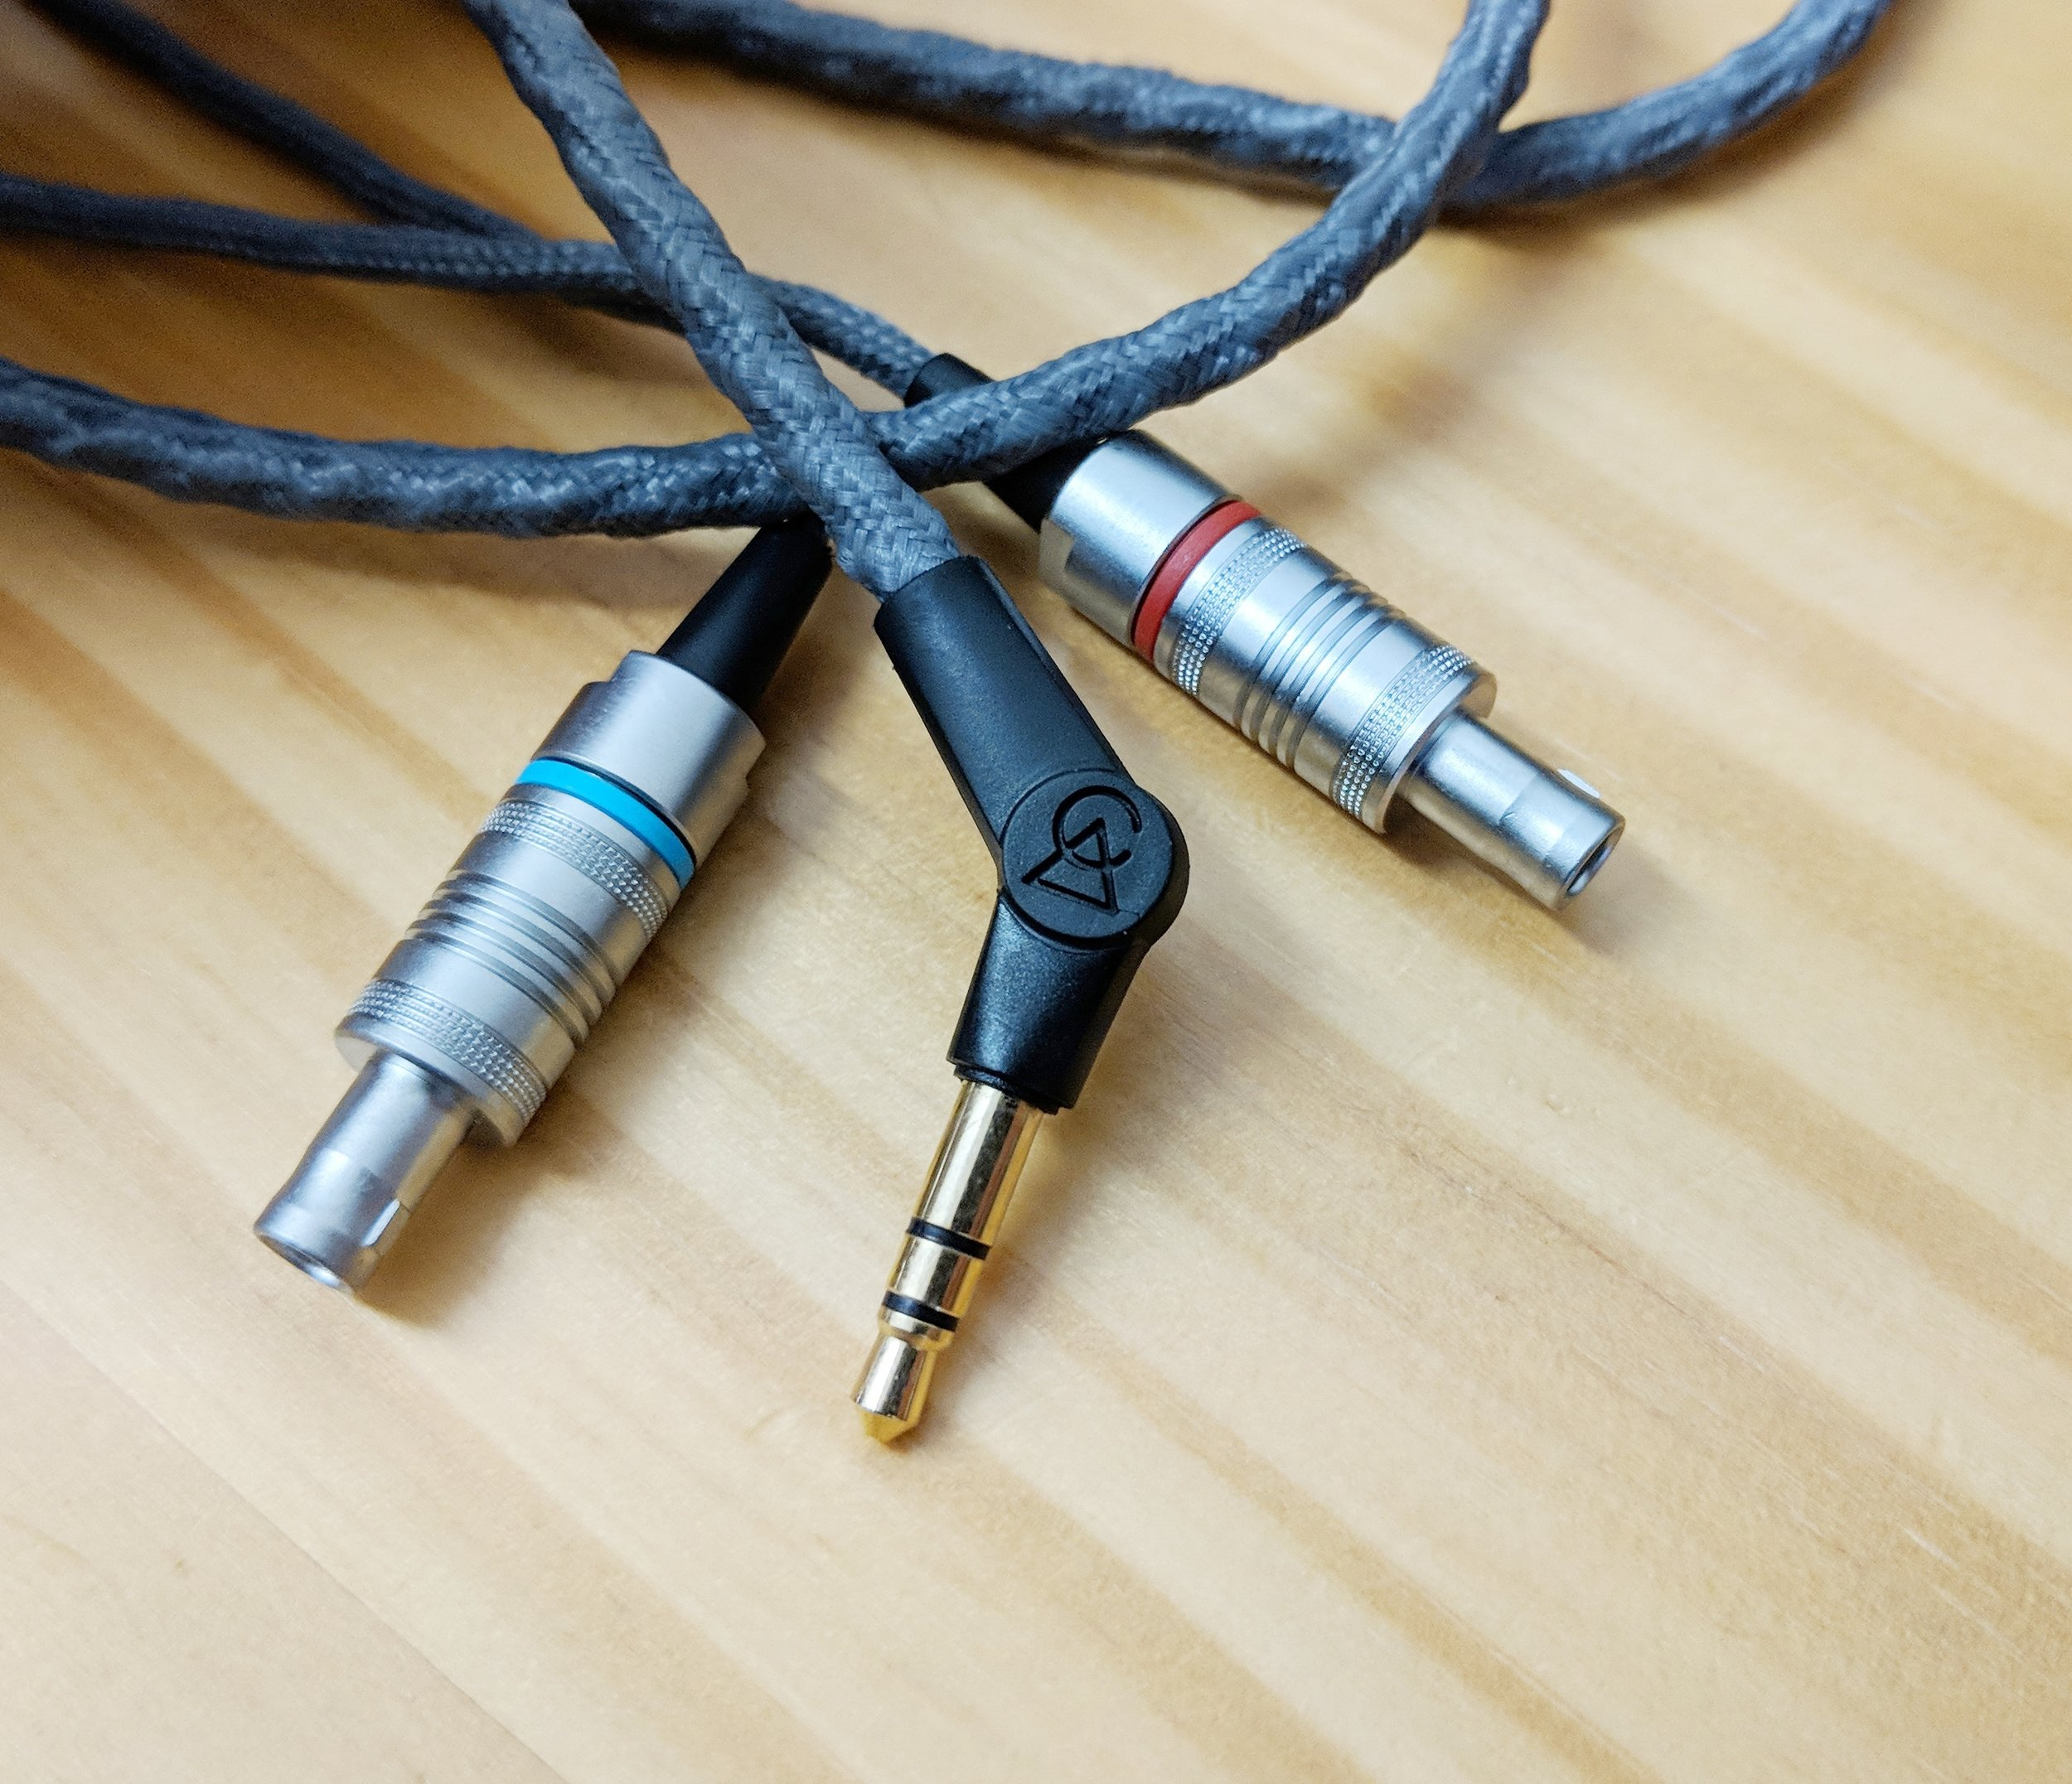 New custome headphone cable with 3.5mm termination for the Campfire Audio Cascade.